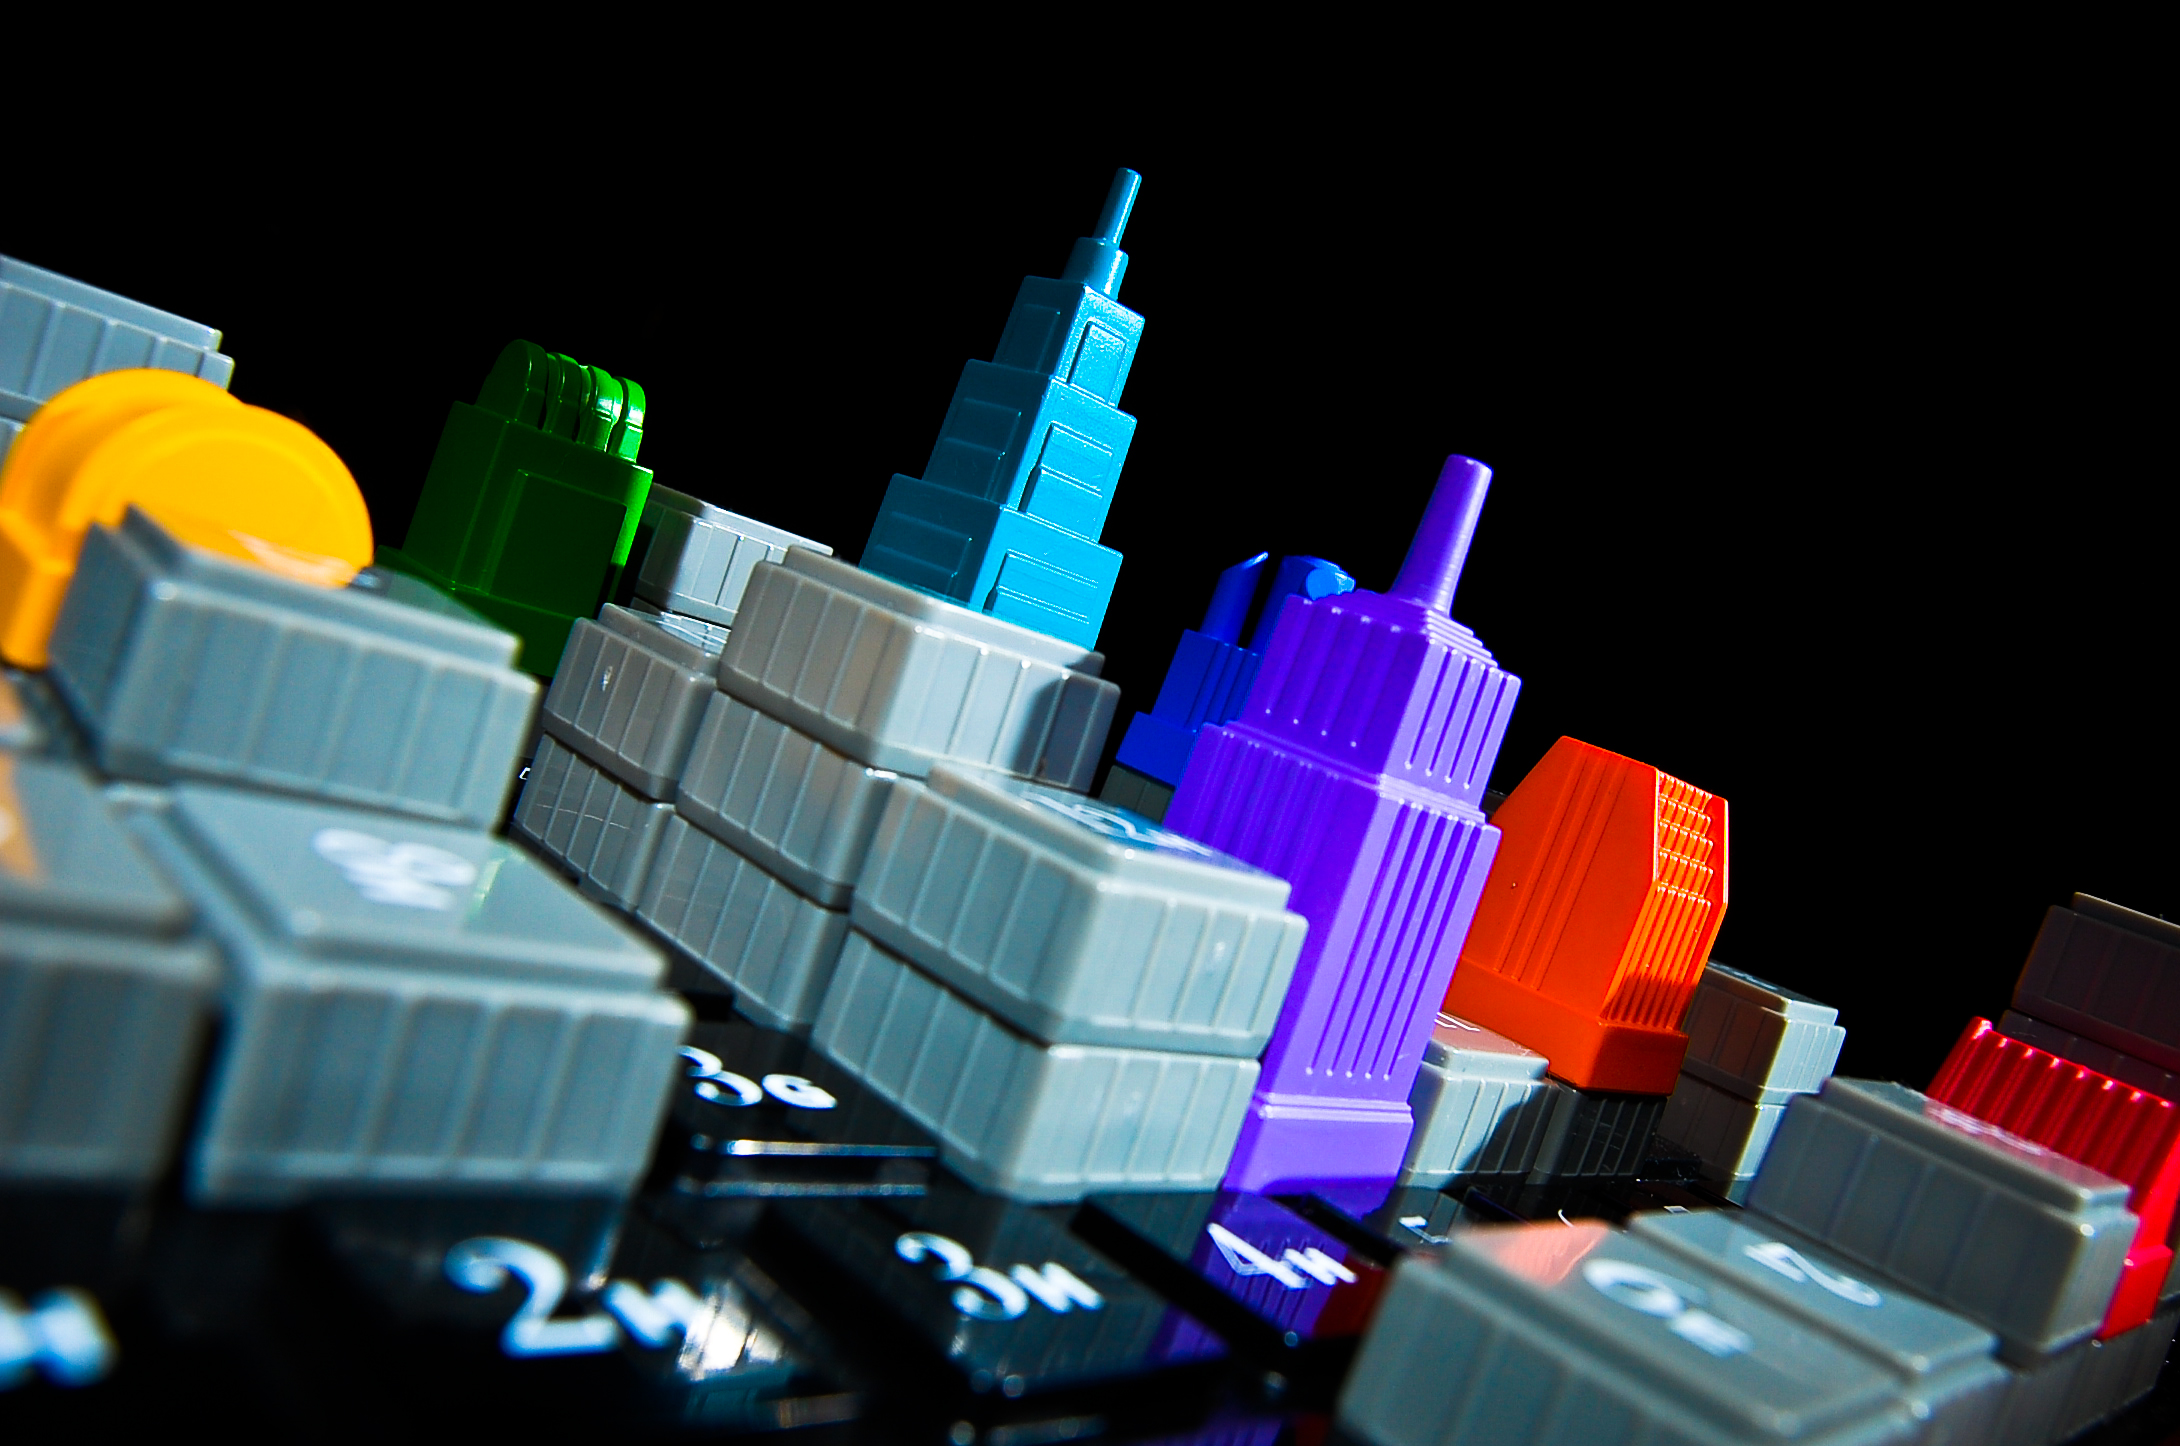 Games like Acquire encourage us to play as capitalists. Image by Ryan Hyde @Flickr CC BY-SA.